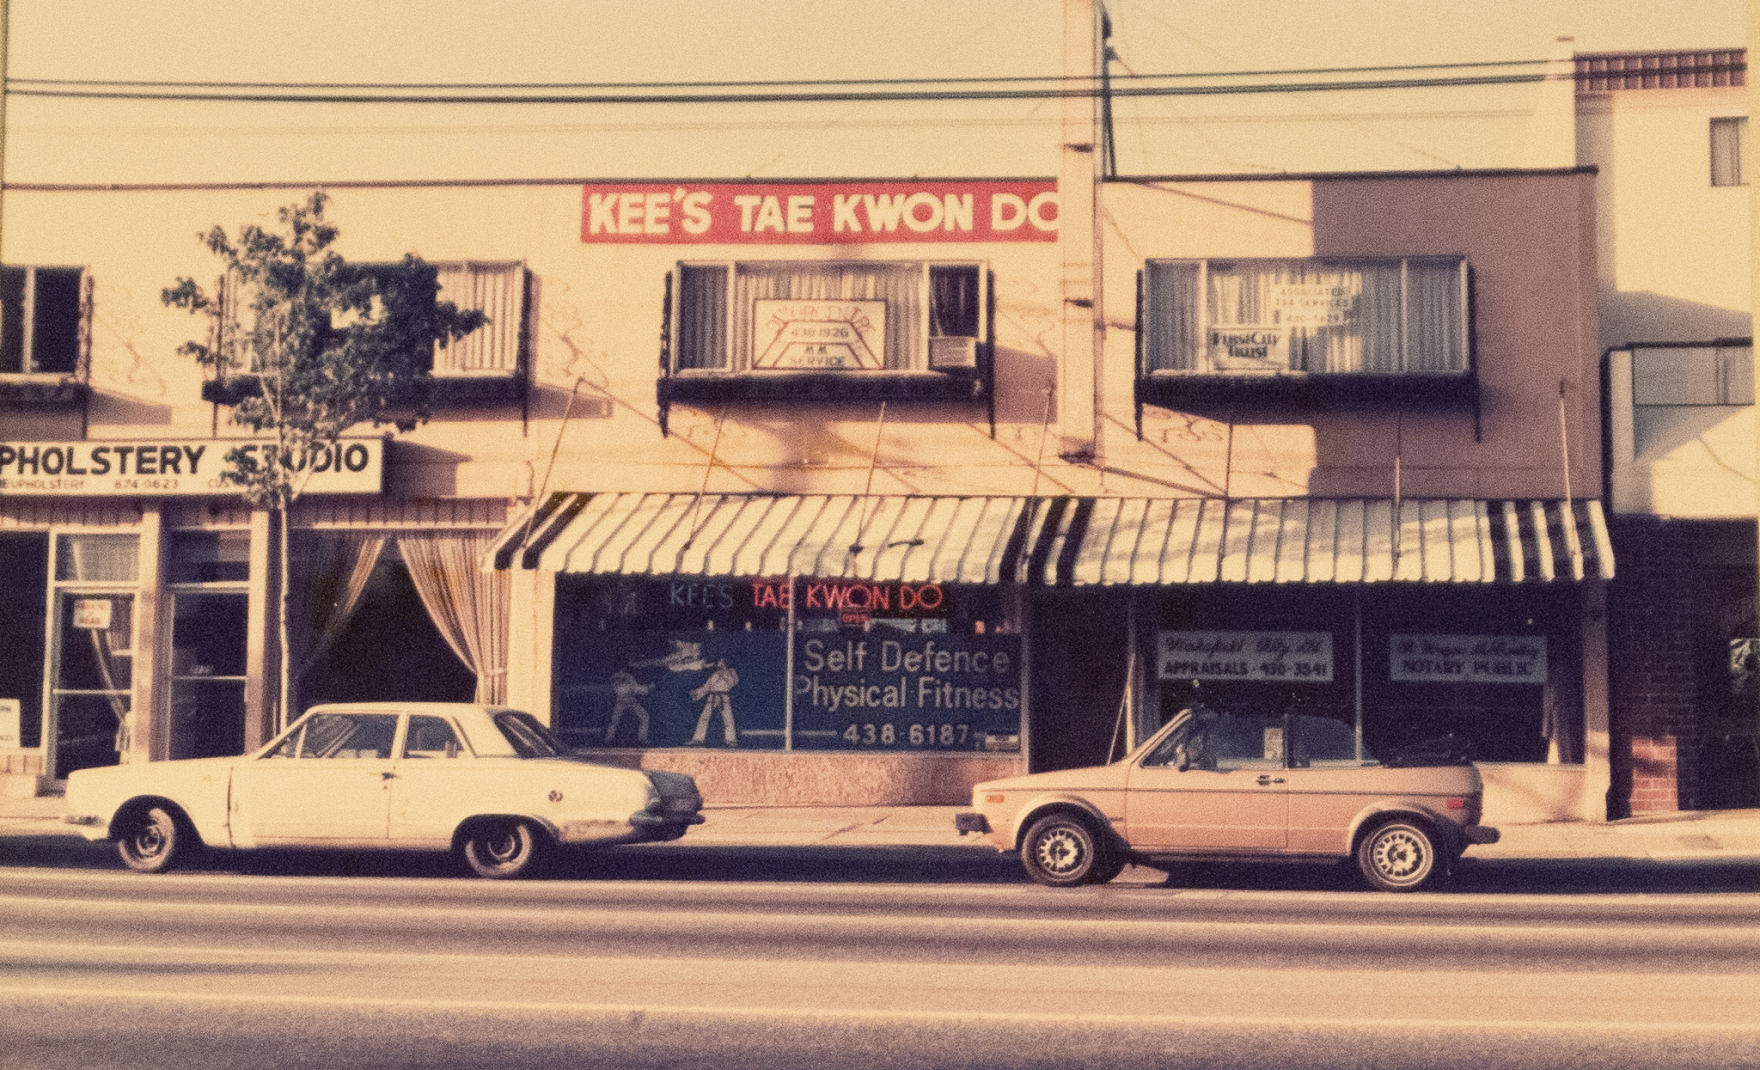 The first Kees Vancouver school opened in 1977 by Grandmaster Kee Ha.